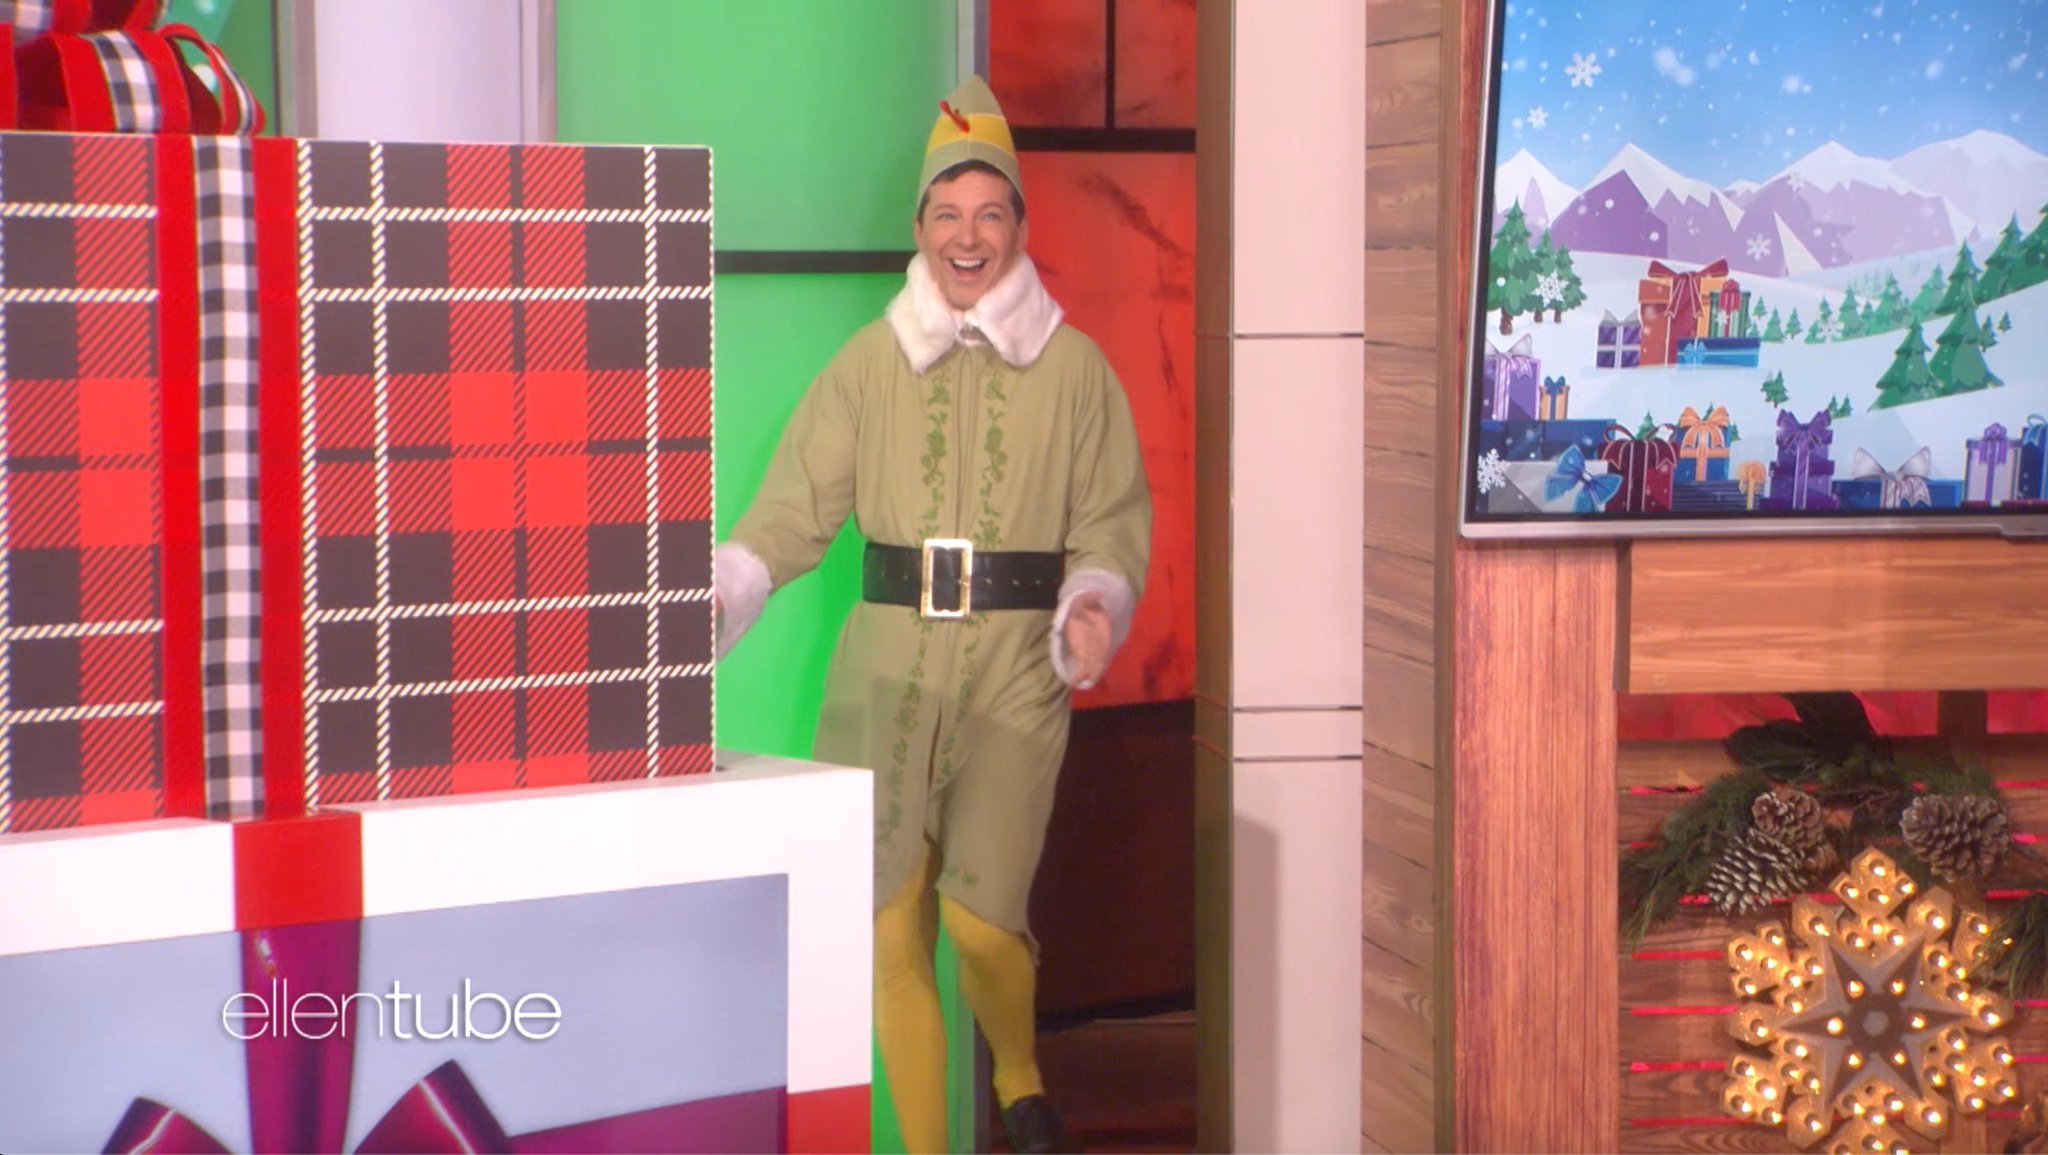 It's Day 10 of #12Days. High time @SeanHayes showed up. https://t.co/i96qtFMufs https://t.co/GPfAo3S59e